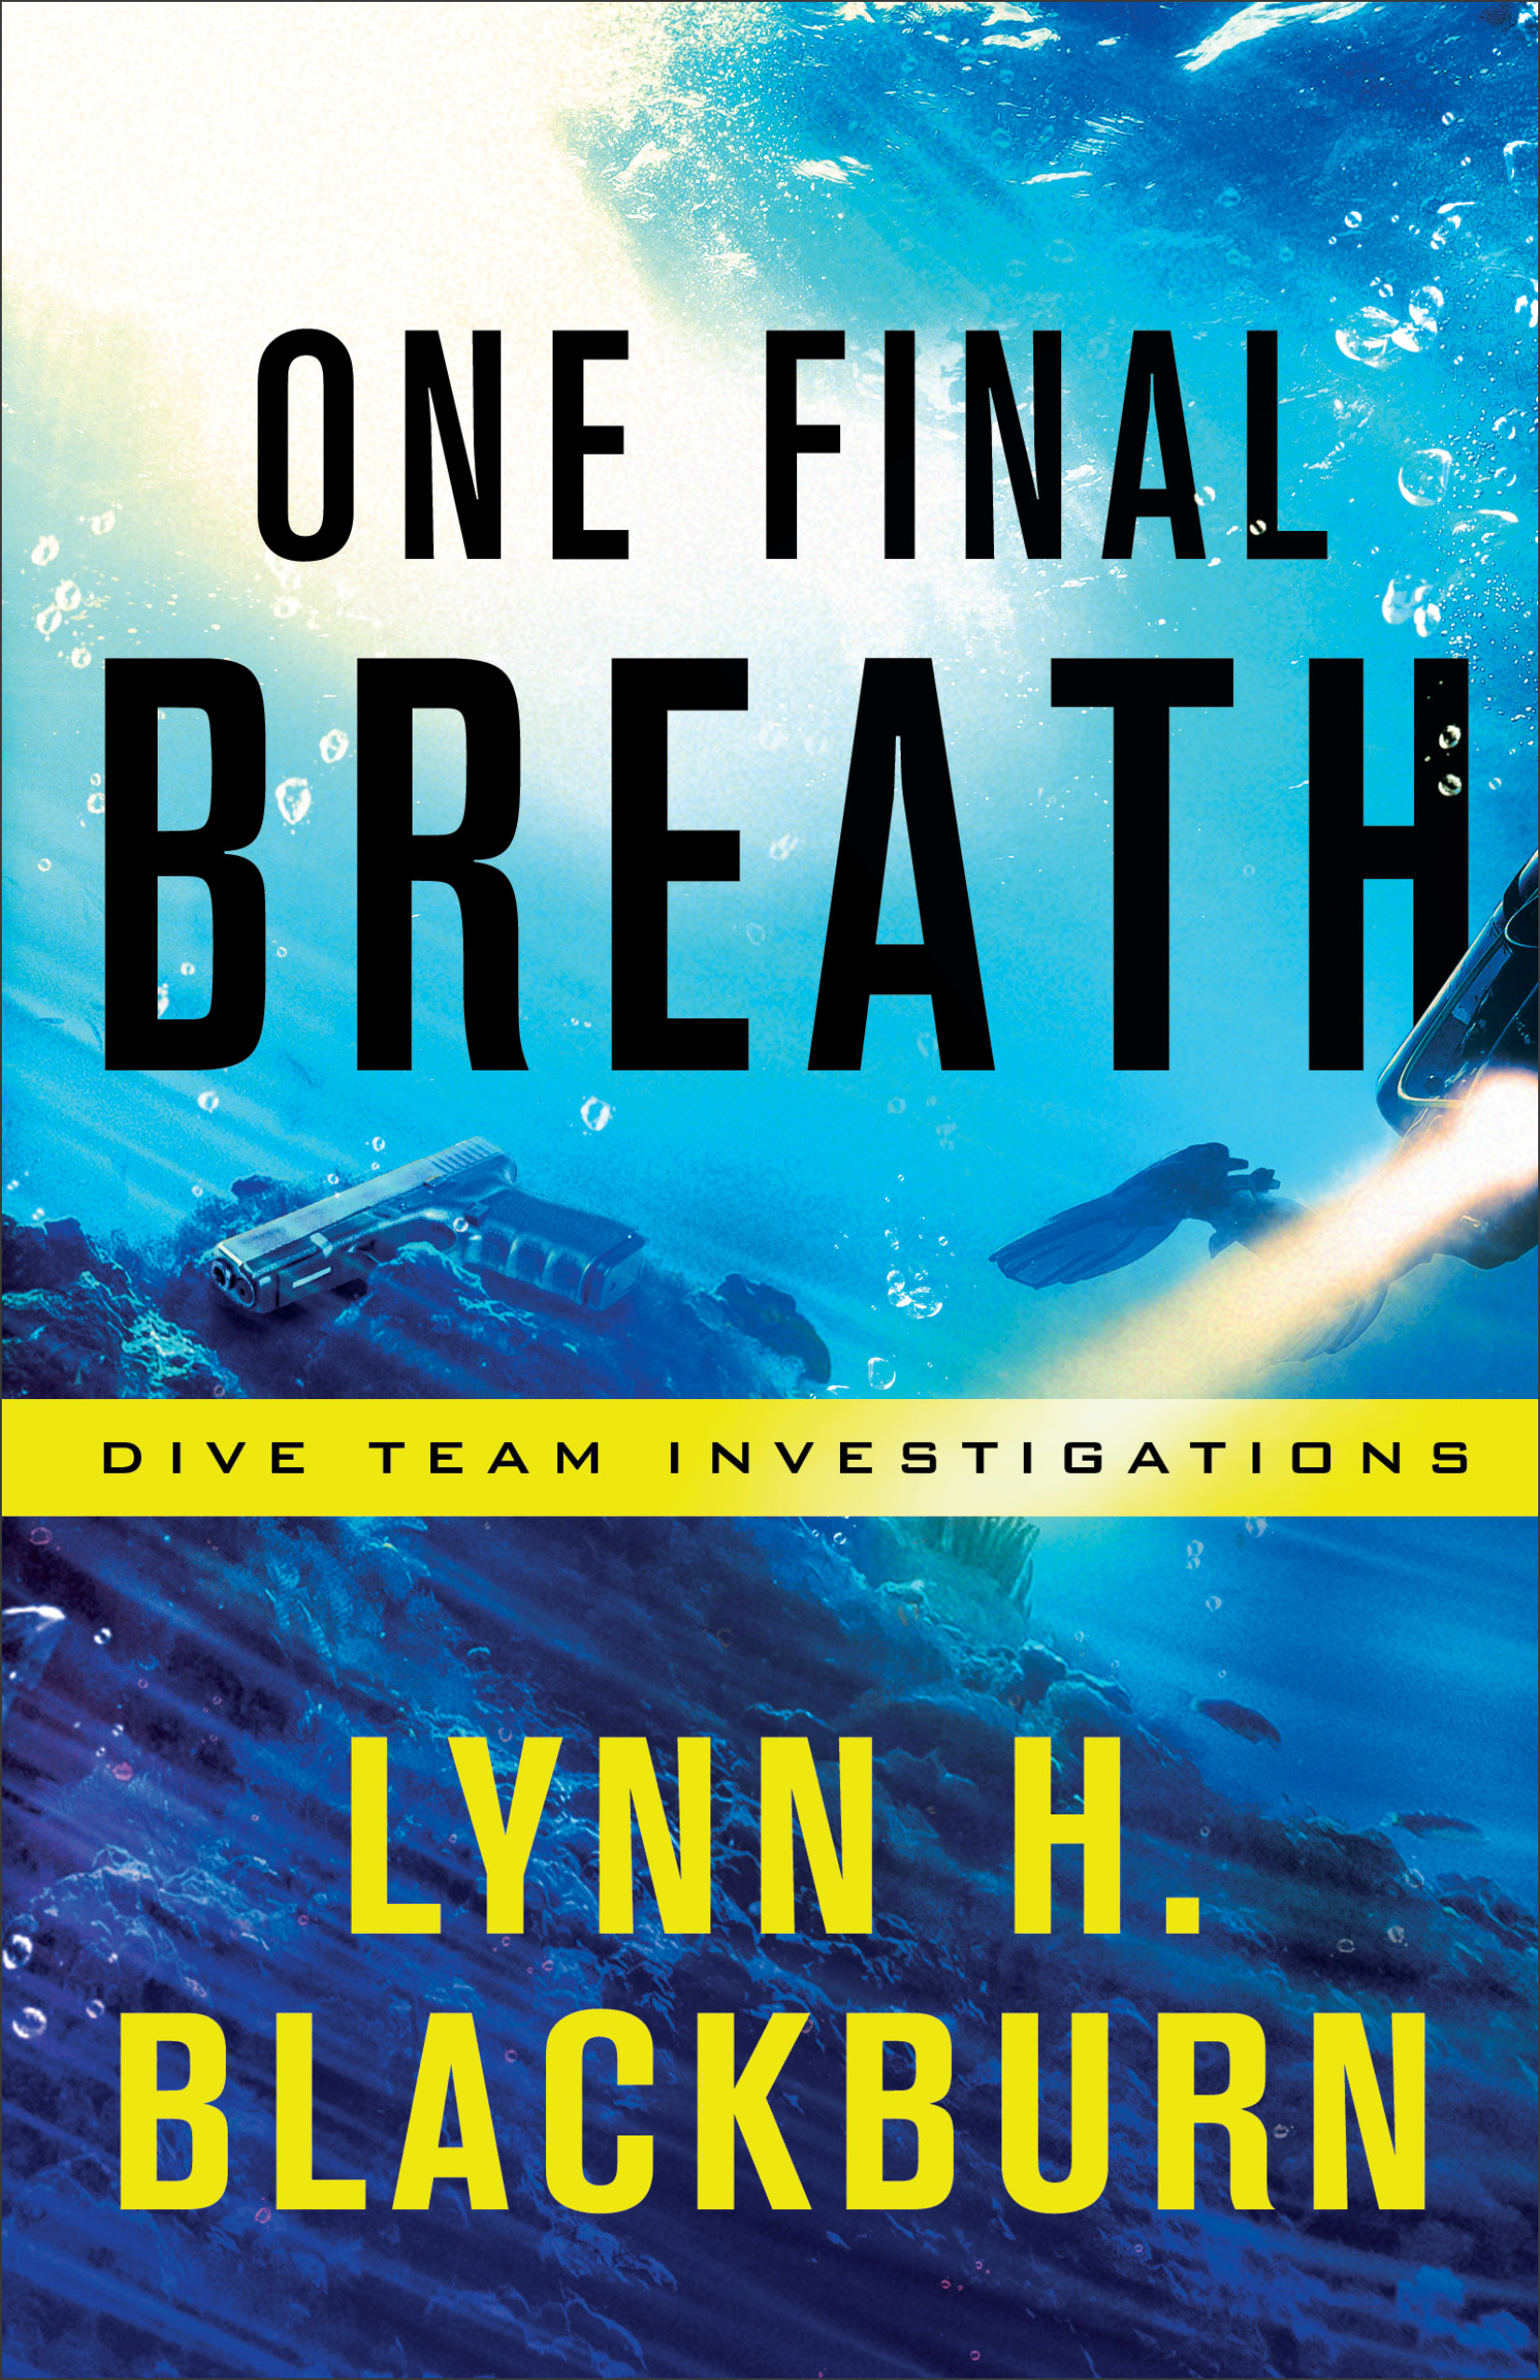 Book review of One Final Breath by Lynn Blackburn (Revell) by papertapepins